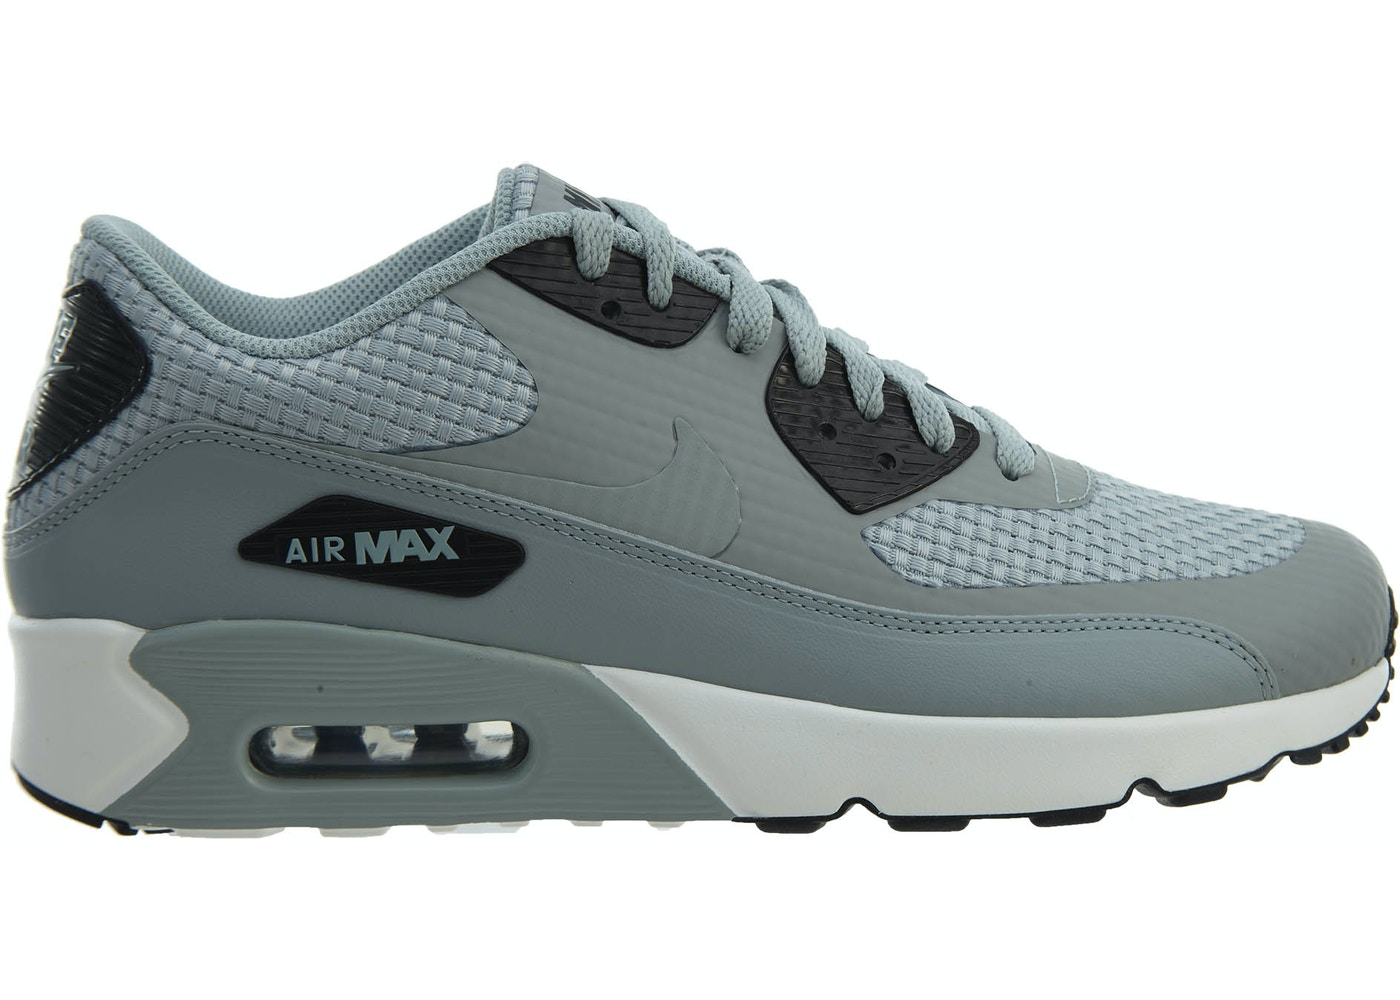 new style adf22 236b2 Nike Air Max 90 Shoes - Volatility